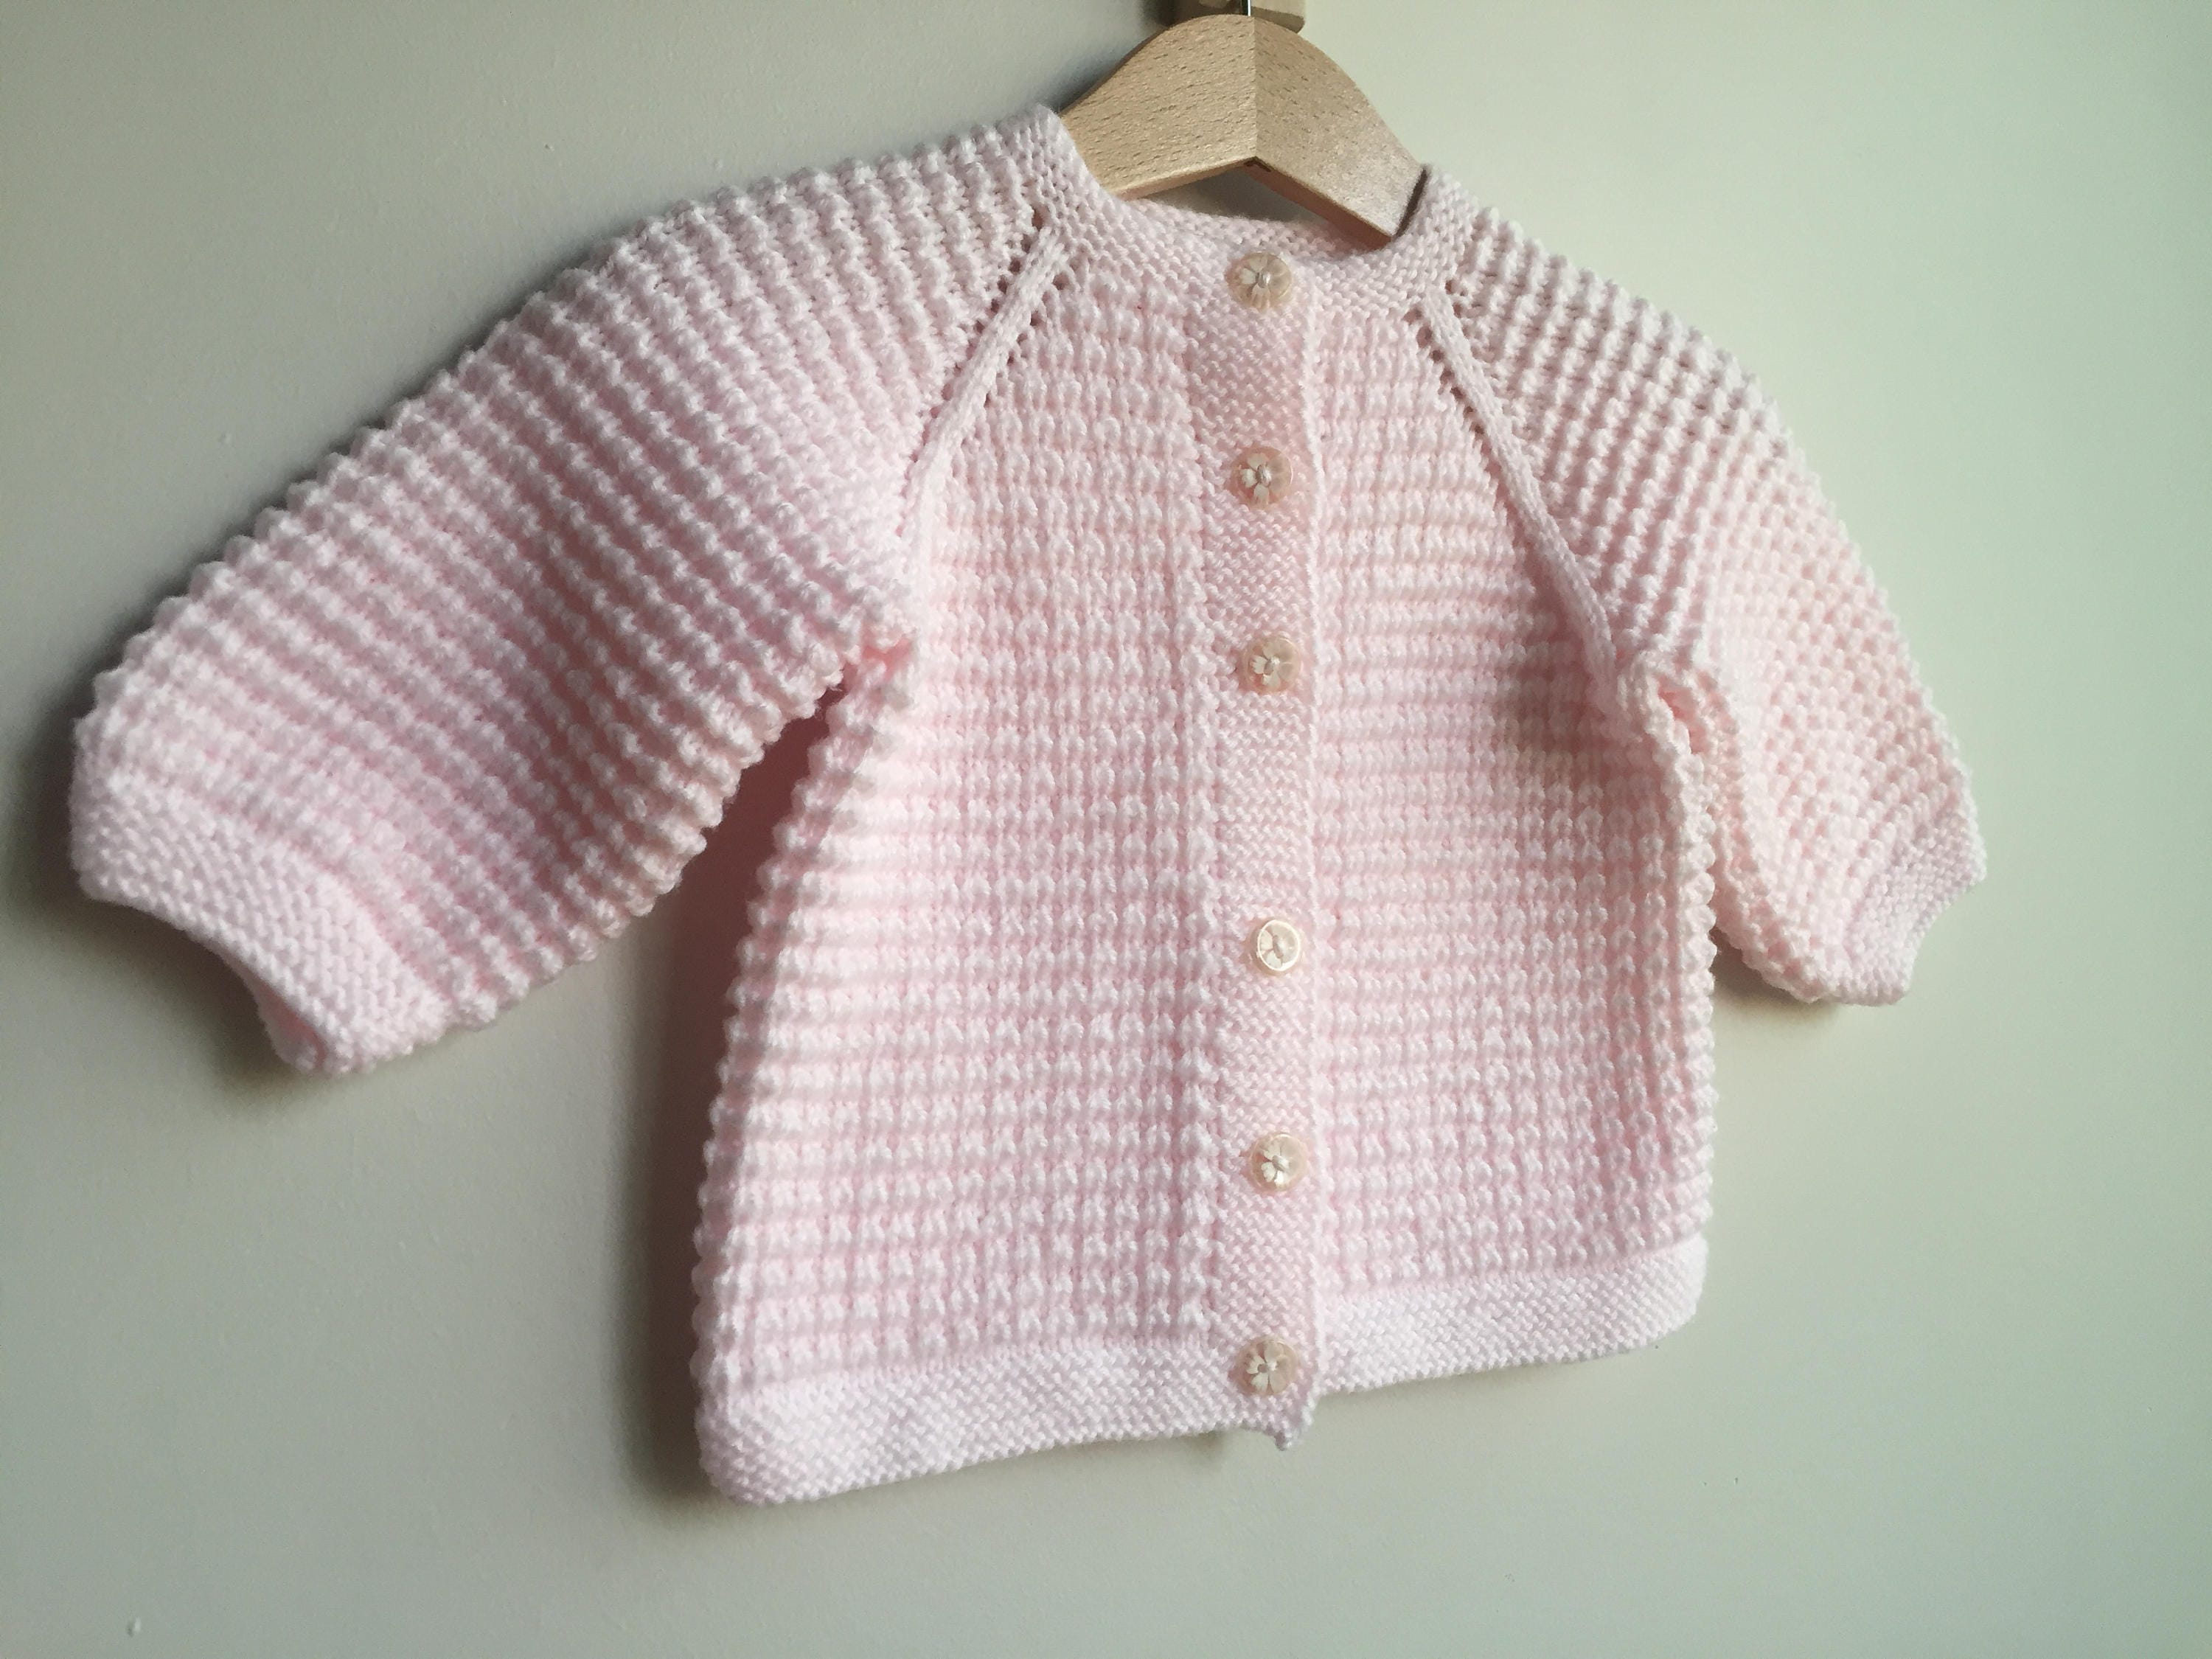 65999d8159c8 Baby Sweater Hand knitted baby cardigan jacket round